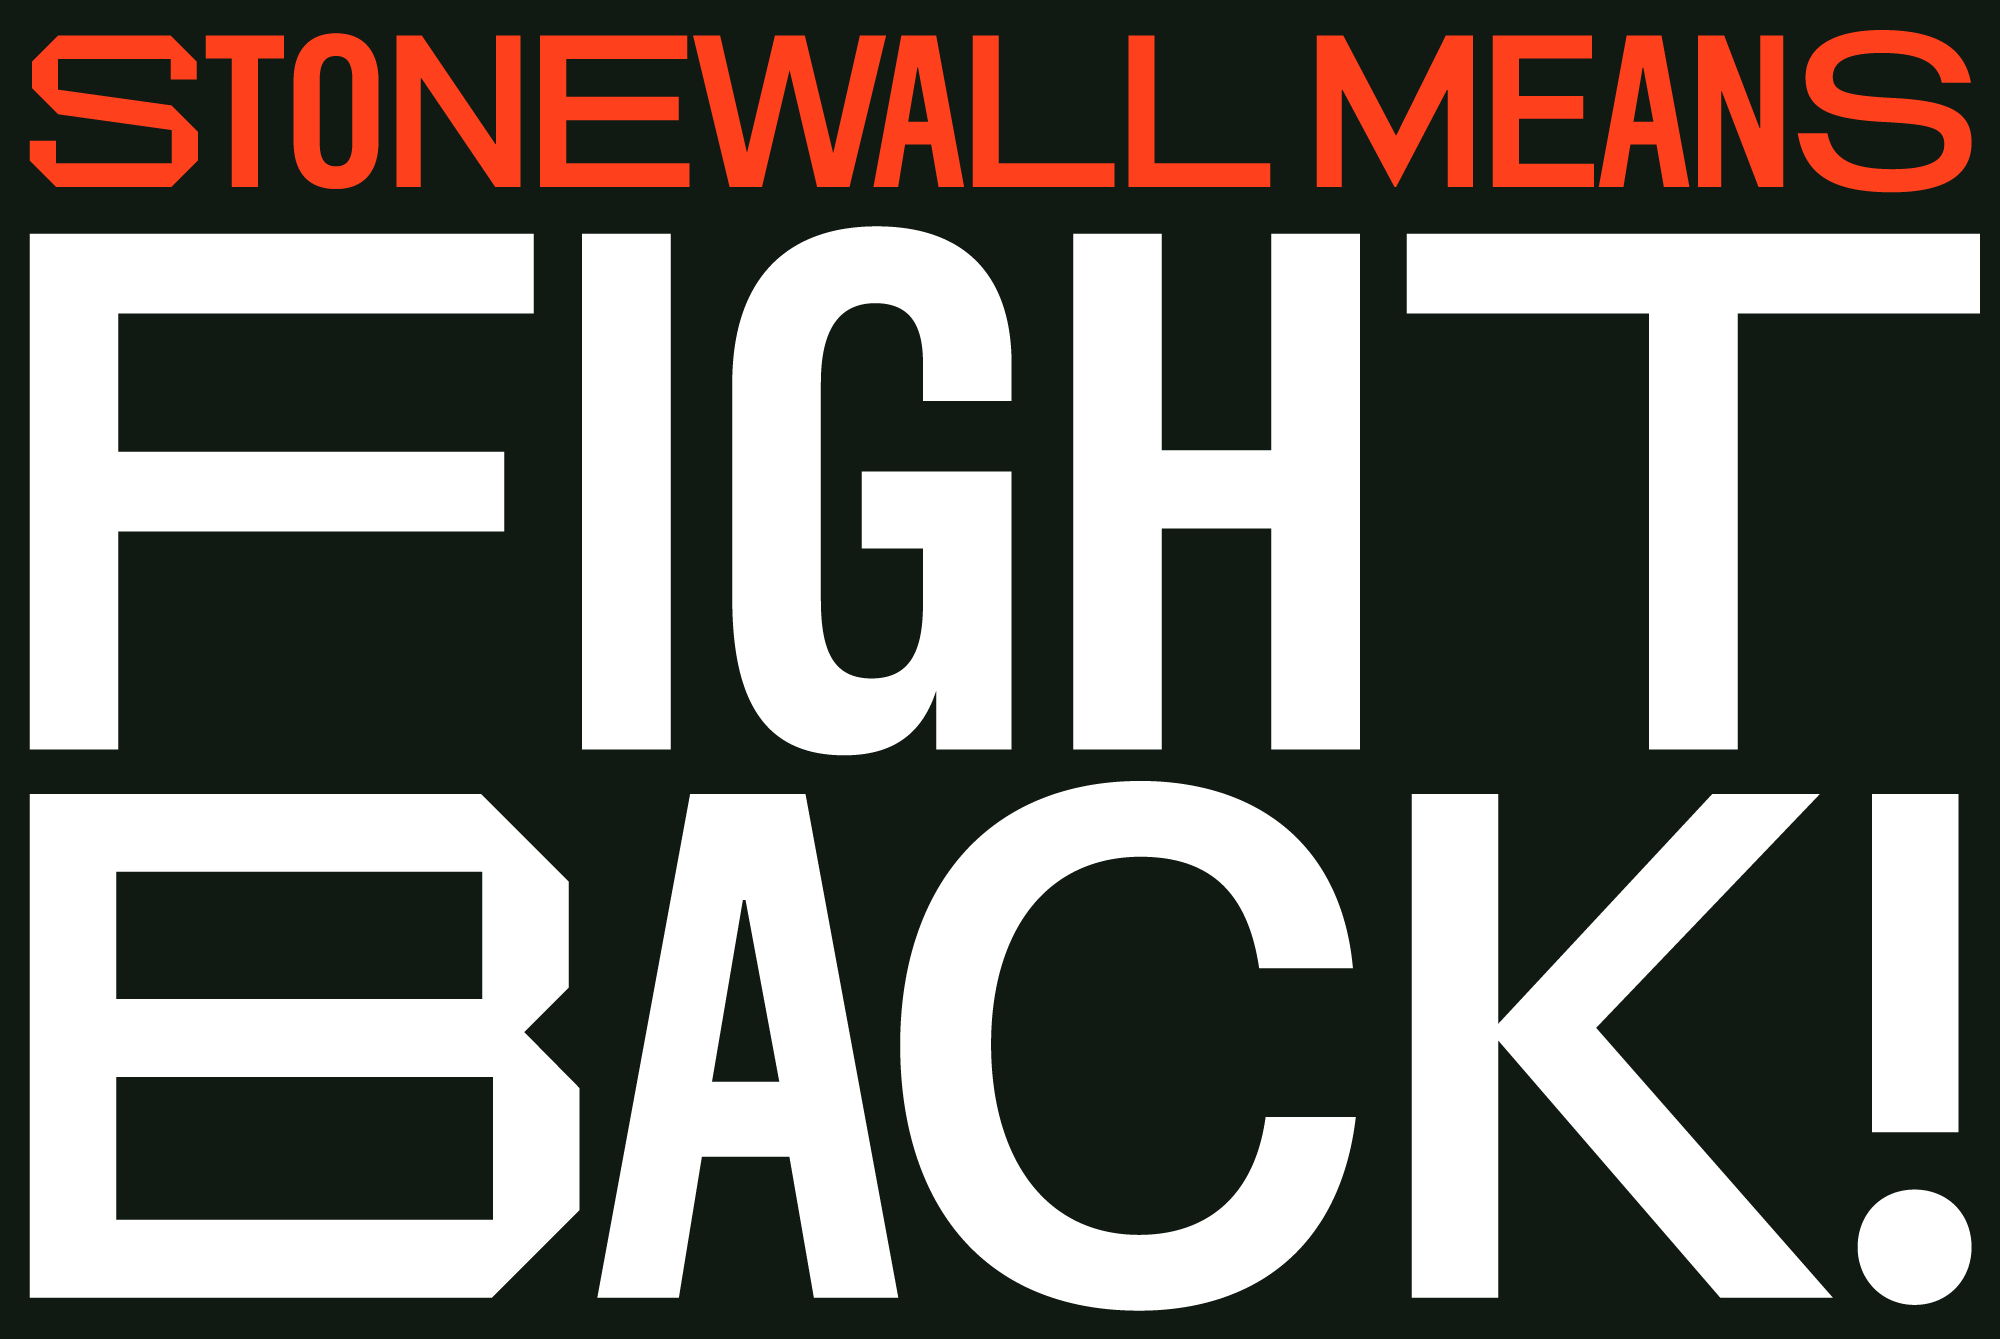 Cover image: Stonewall 50 Typeface